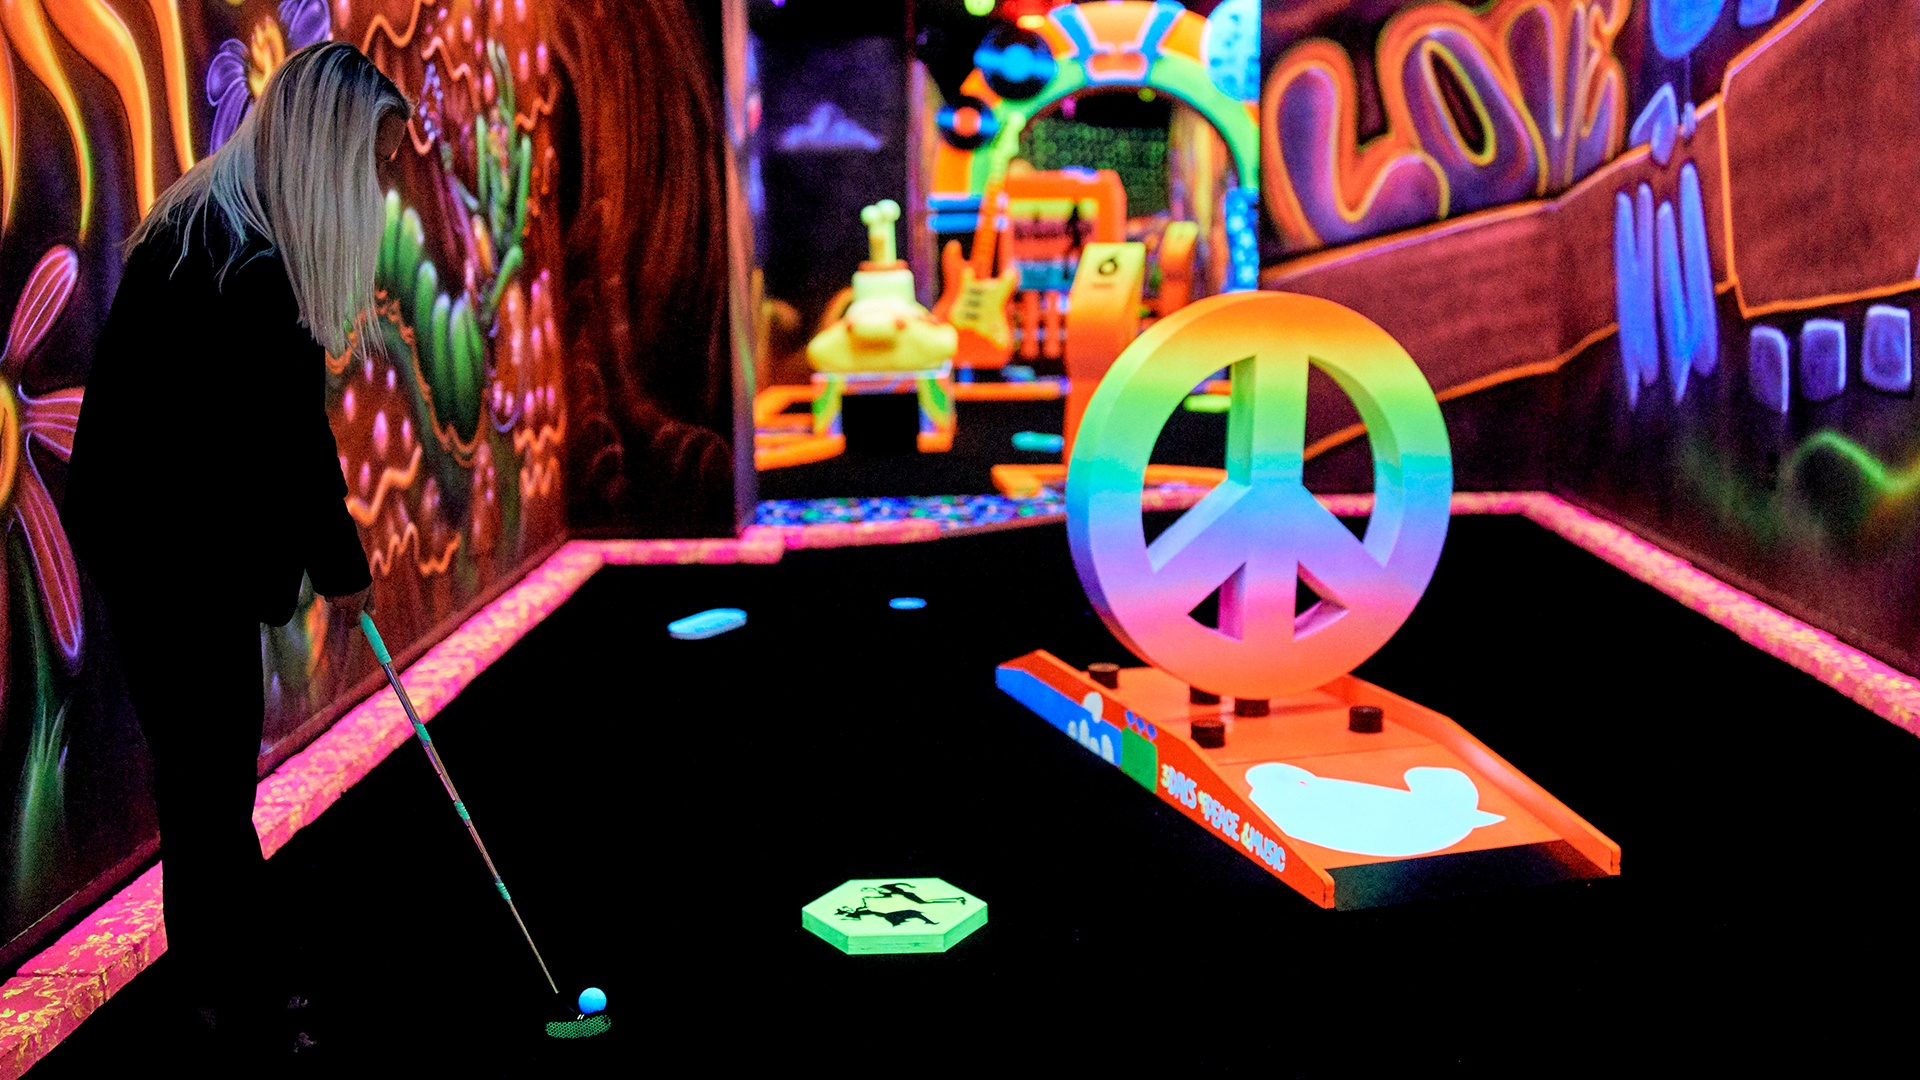 Advantages In Playing Blacklight Glow Golf